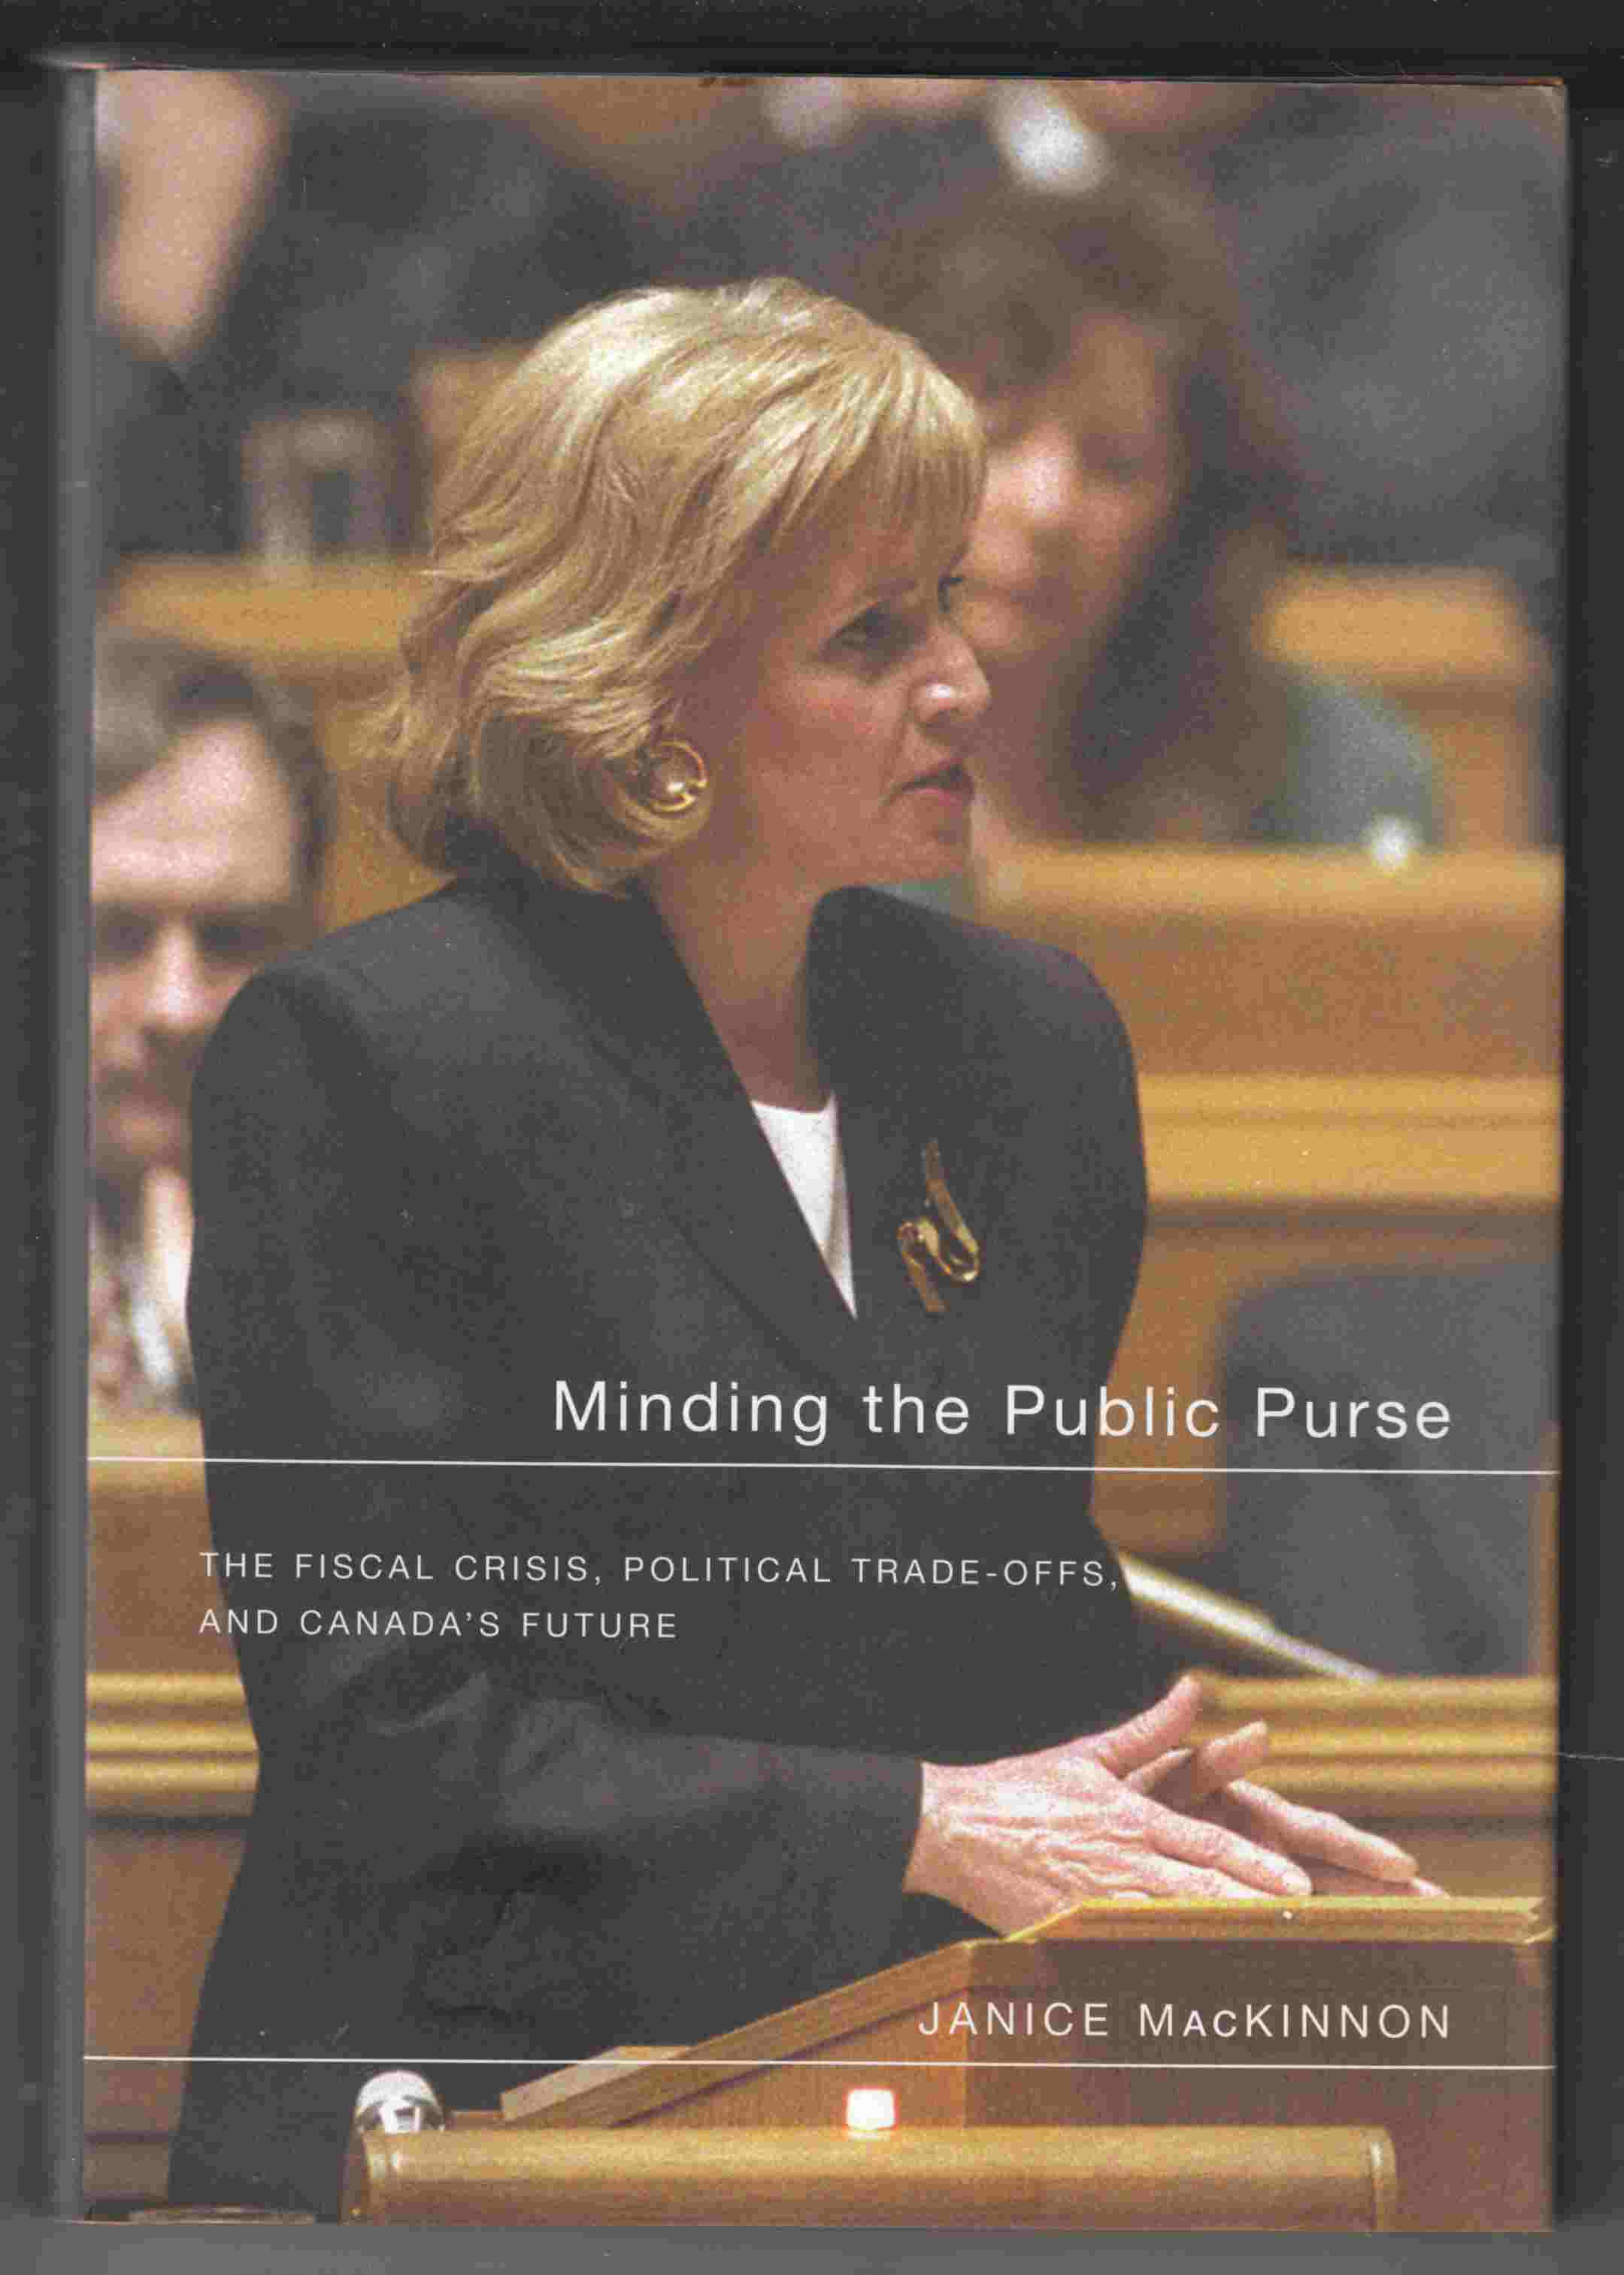 Image for Minding the Public Purse The Fiscal Crisis, Political Trade-Offs, and Canada's Future